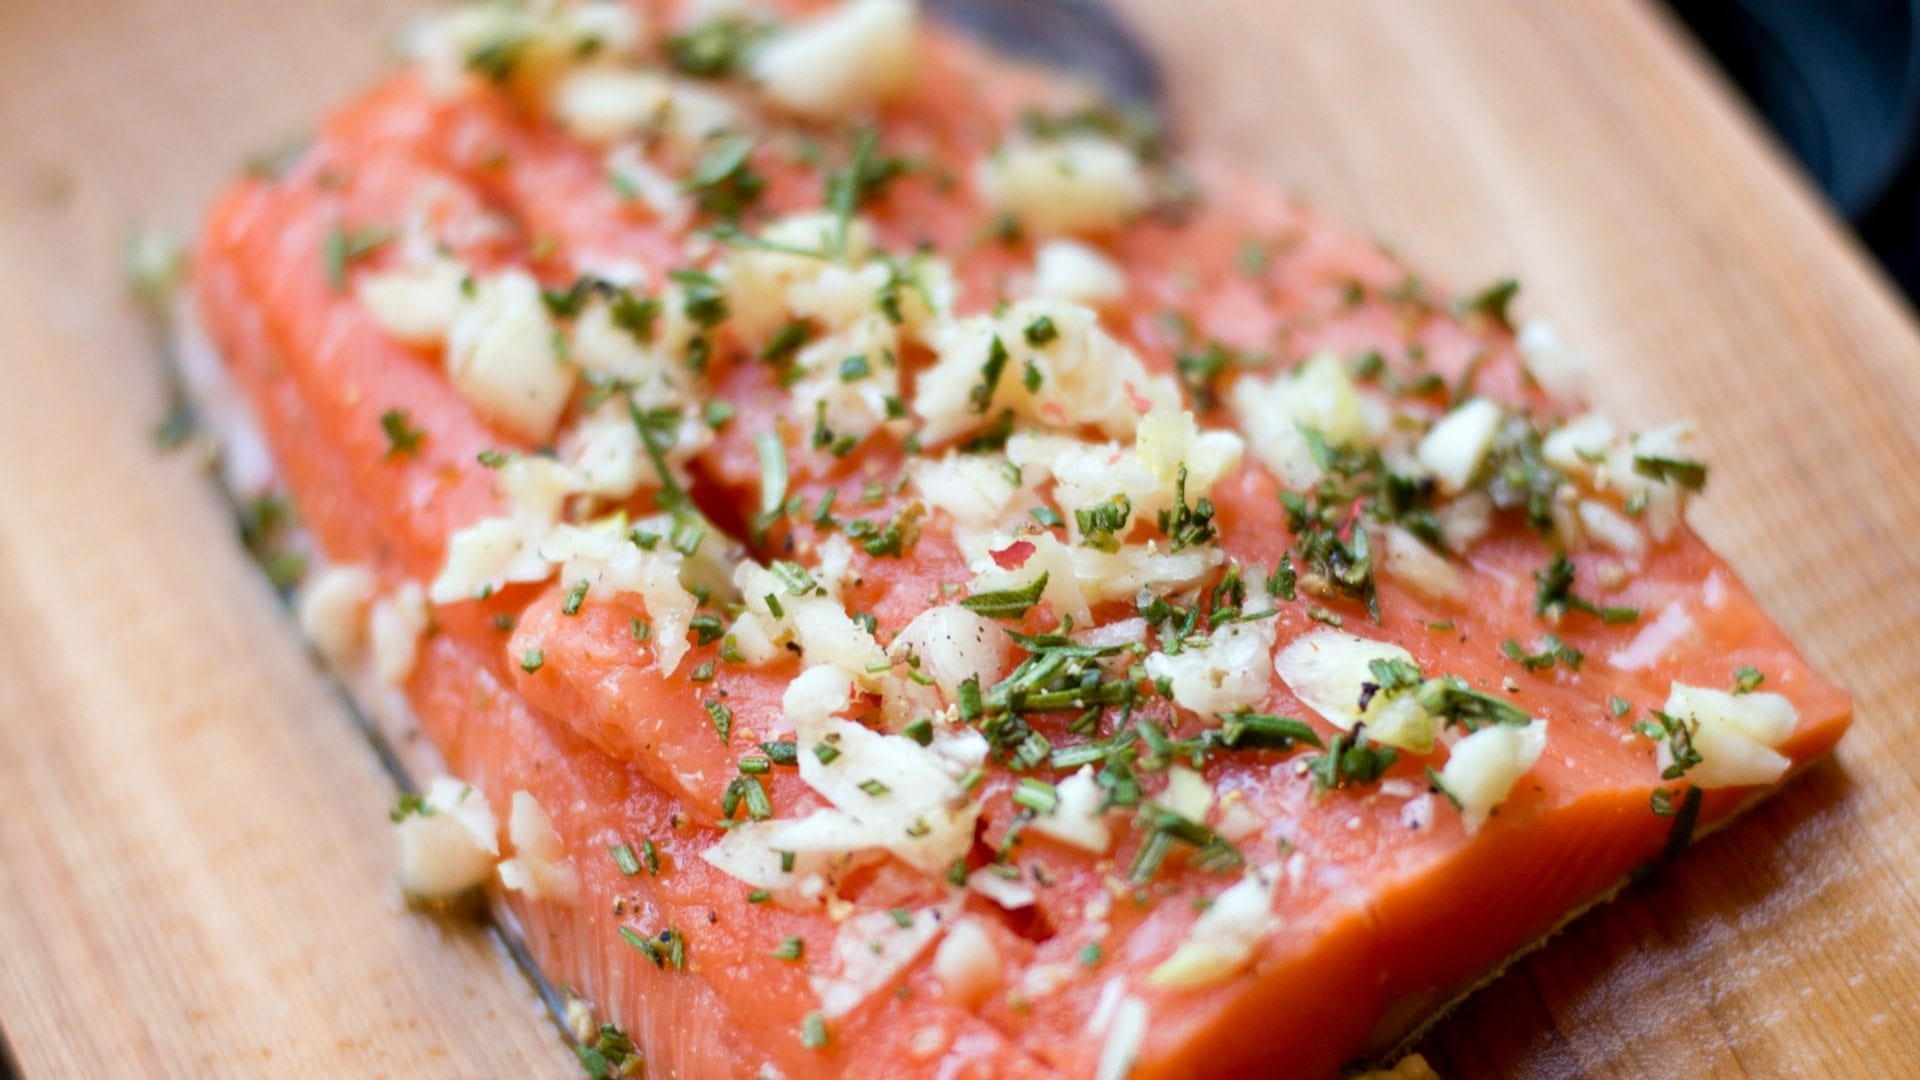 marinade, salmon, cedar plank, summer, recipe, meal ideas, easy entertaining